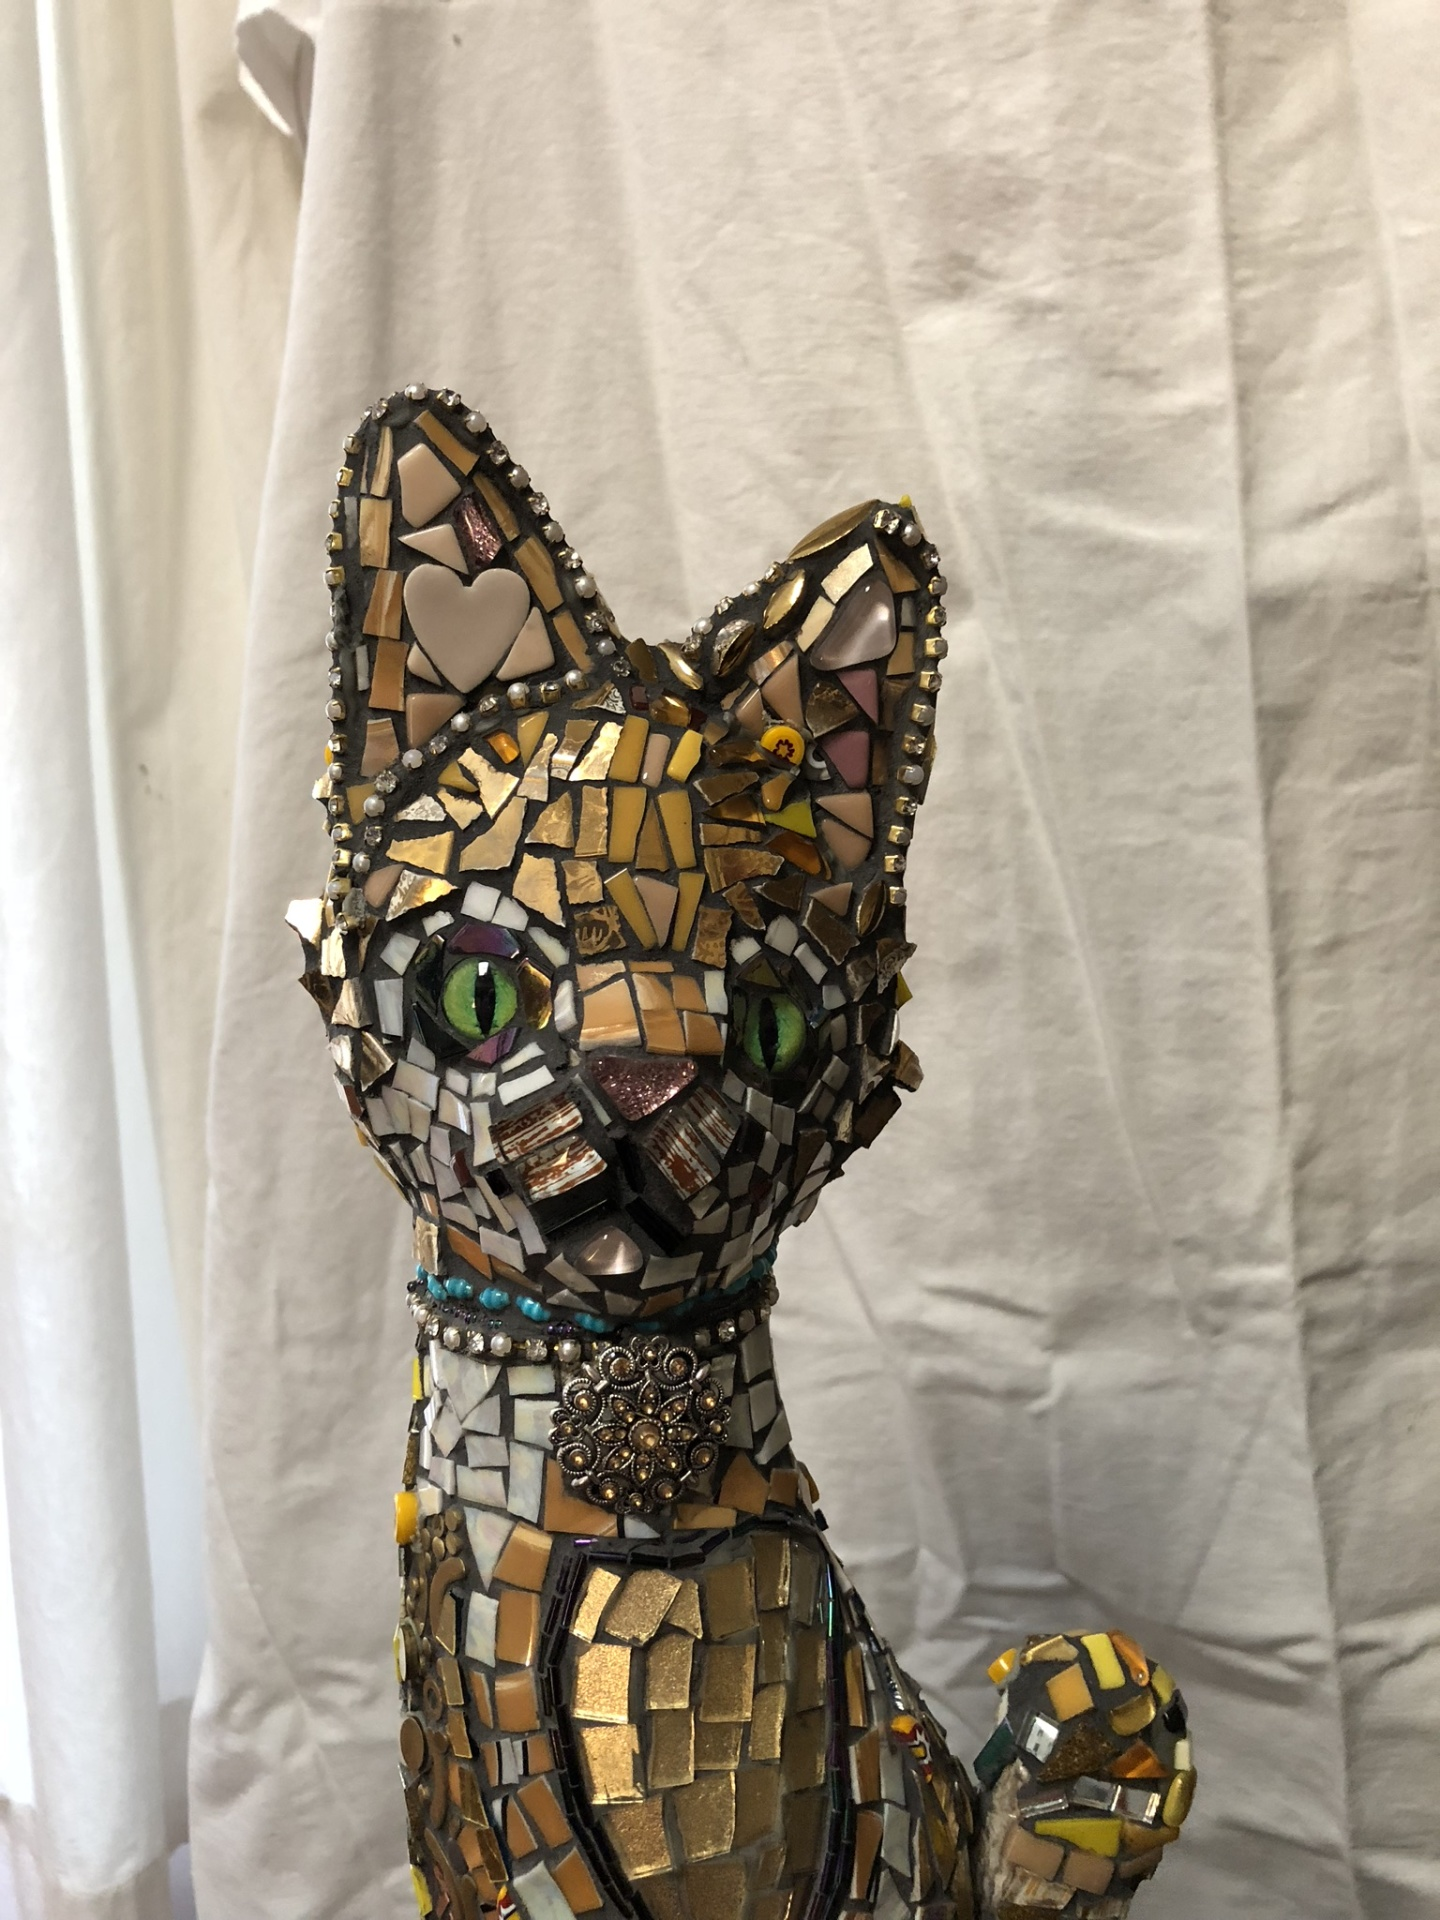 King of the Cats! New Sculpture!